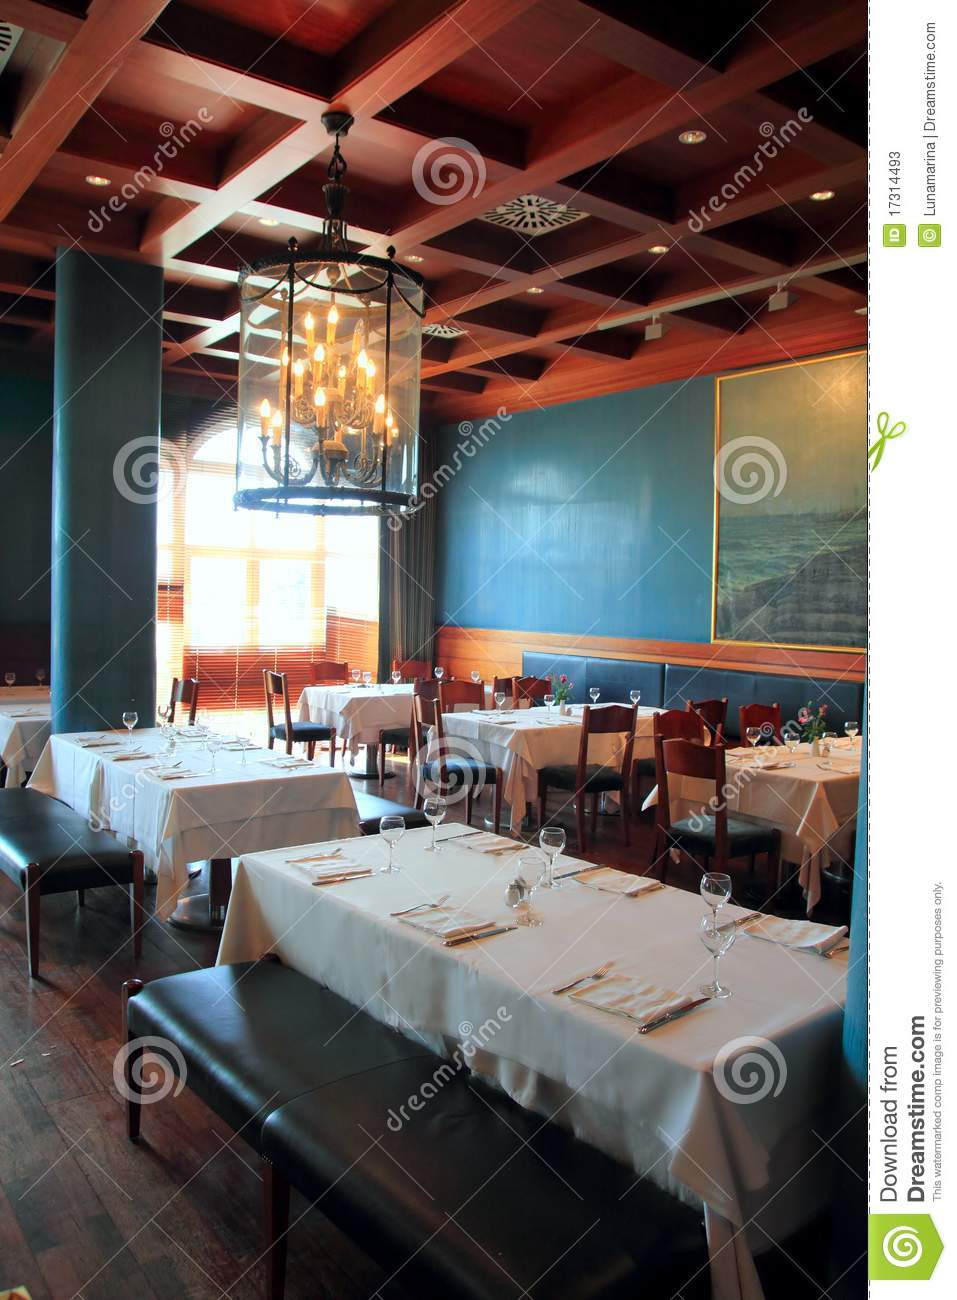 Interior Restaurant Decoration Warm Wood Ceiling Stock Image - Image ...